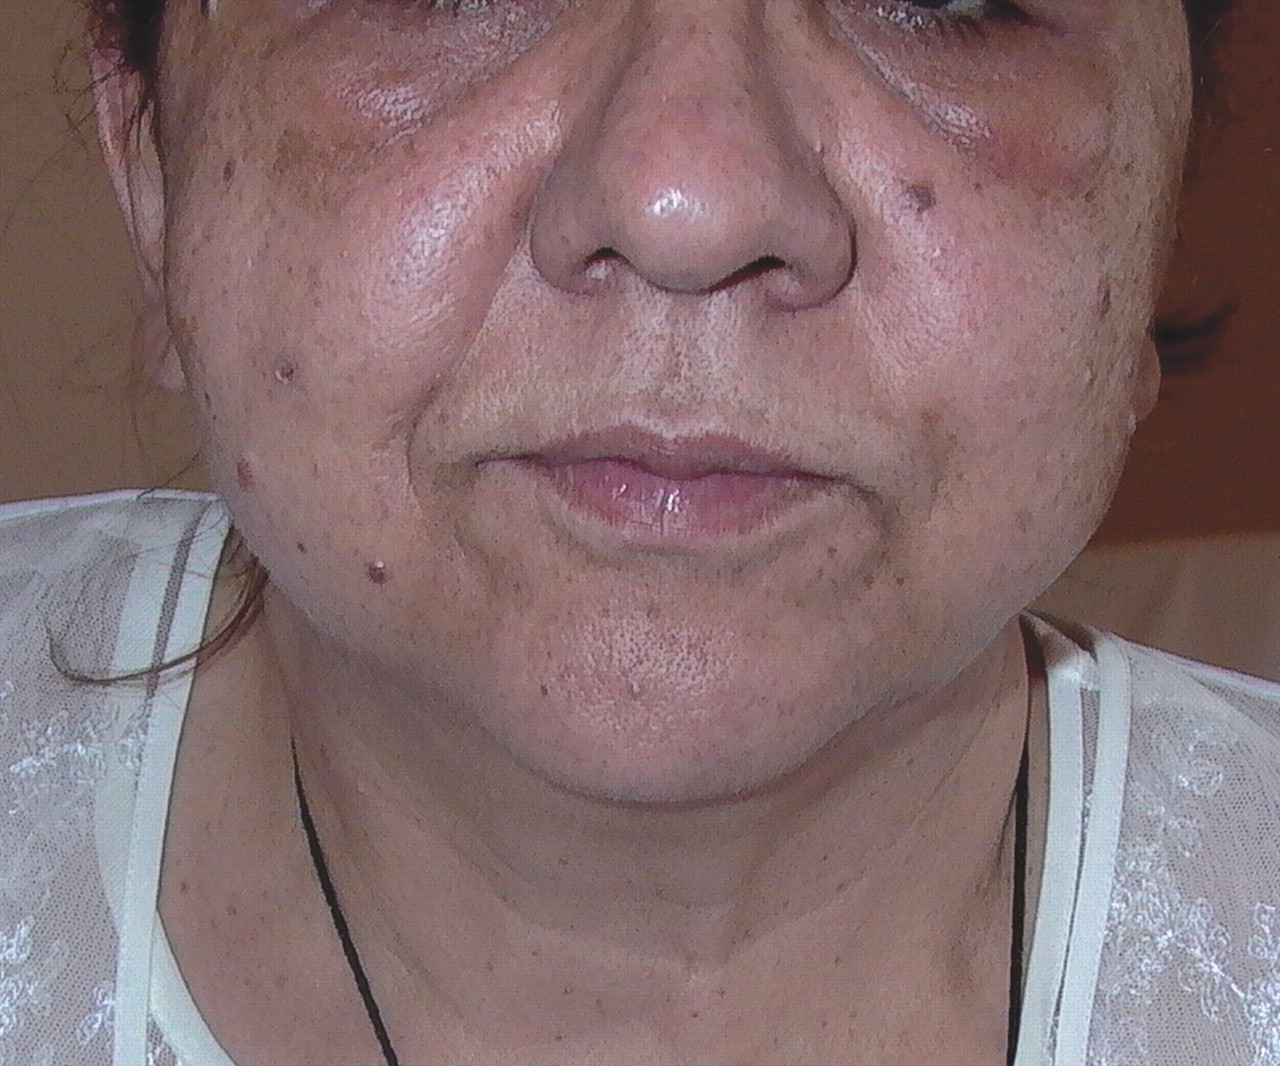 facial edema due to allergic reaction